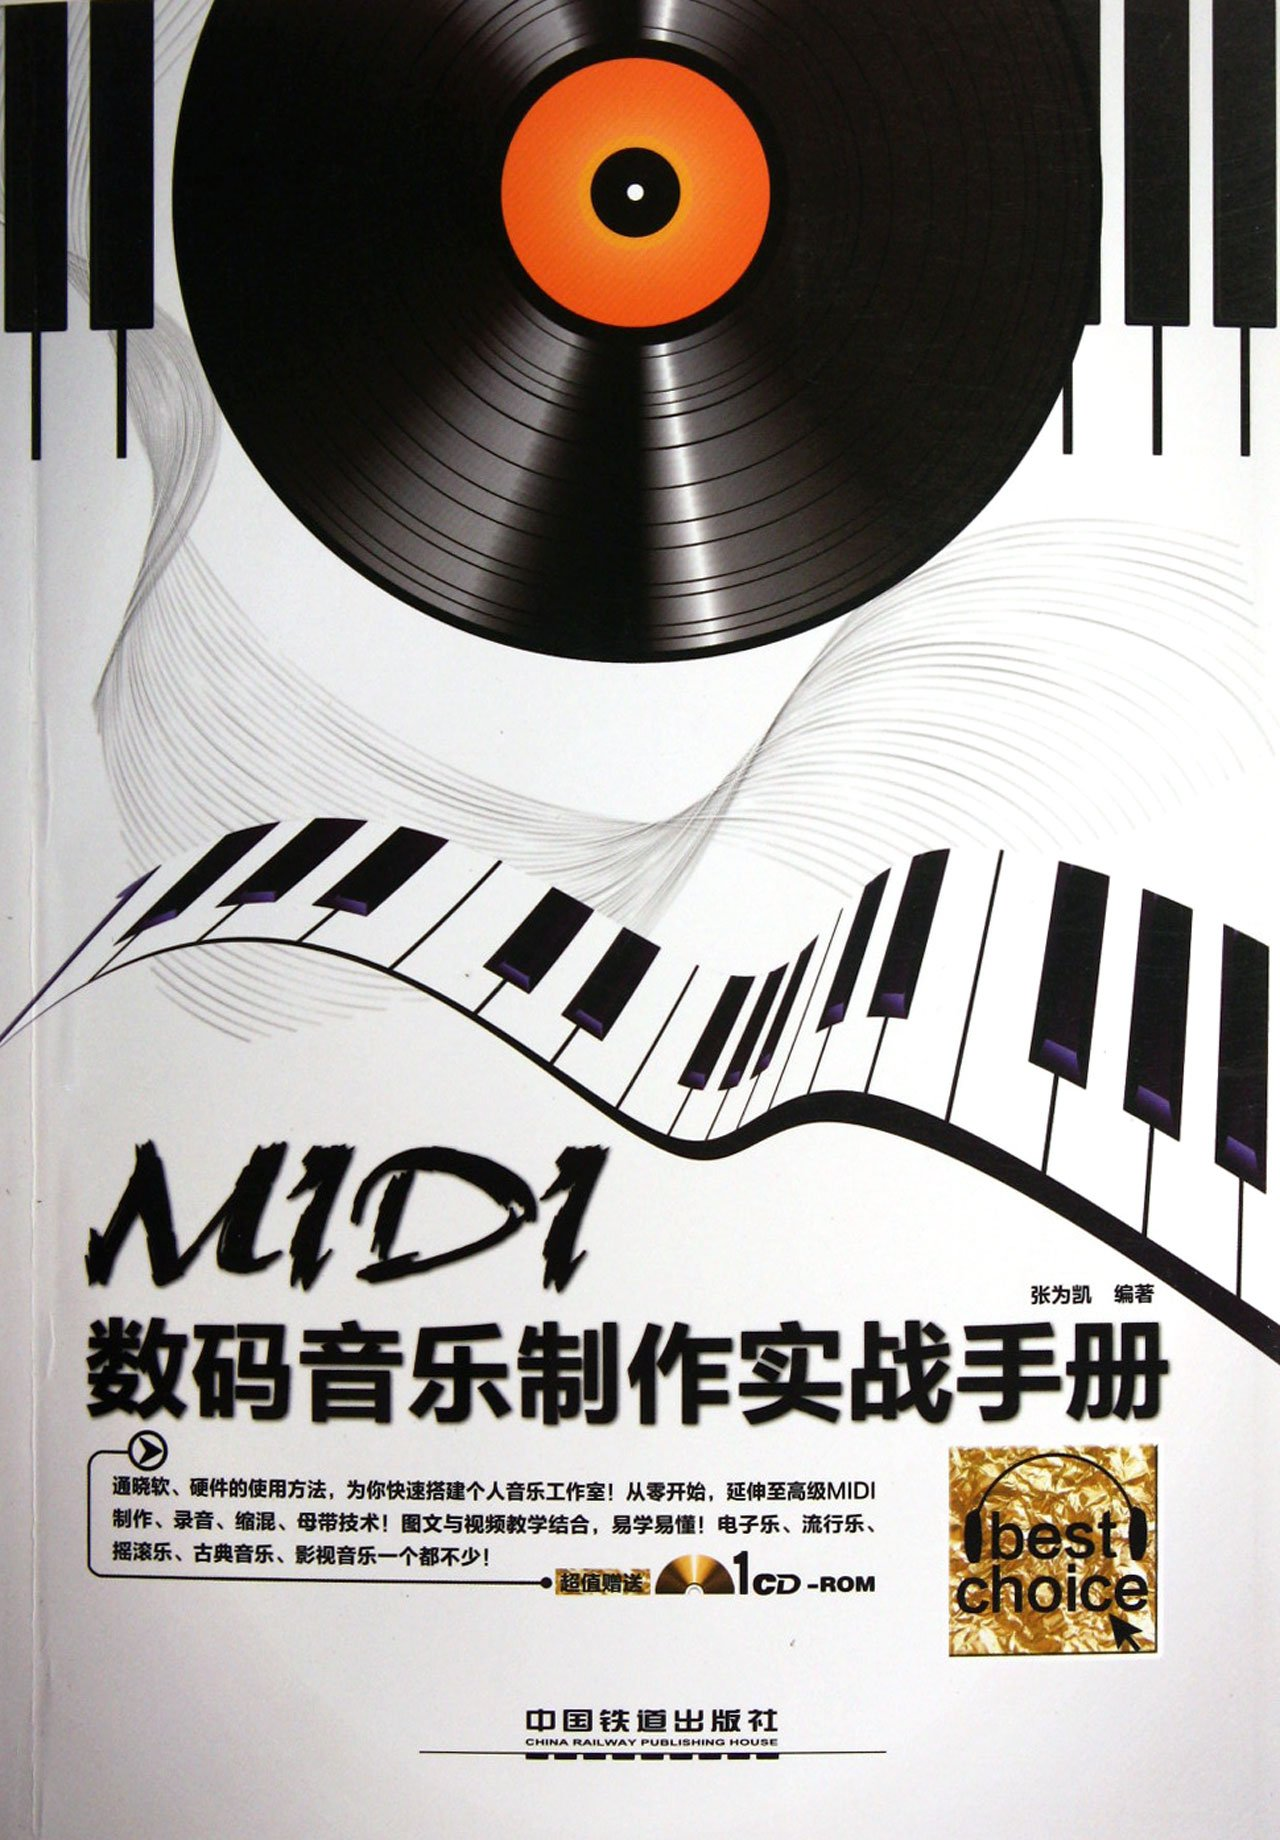 Download Practical Handbook of MIDI Digital Music Production - with a Gift CD (Chinese Edition) ebook